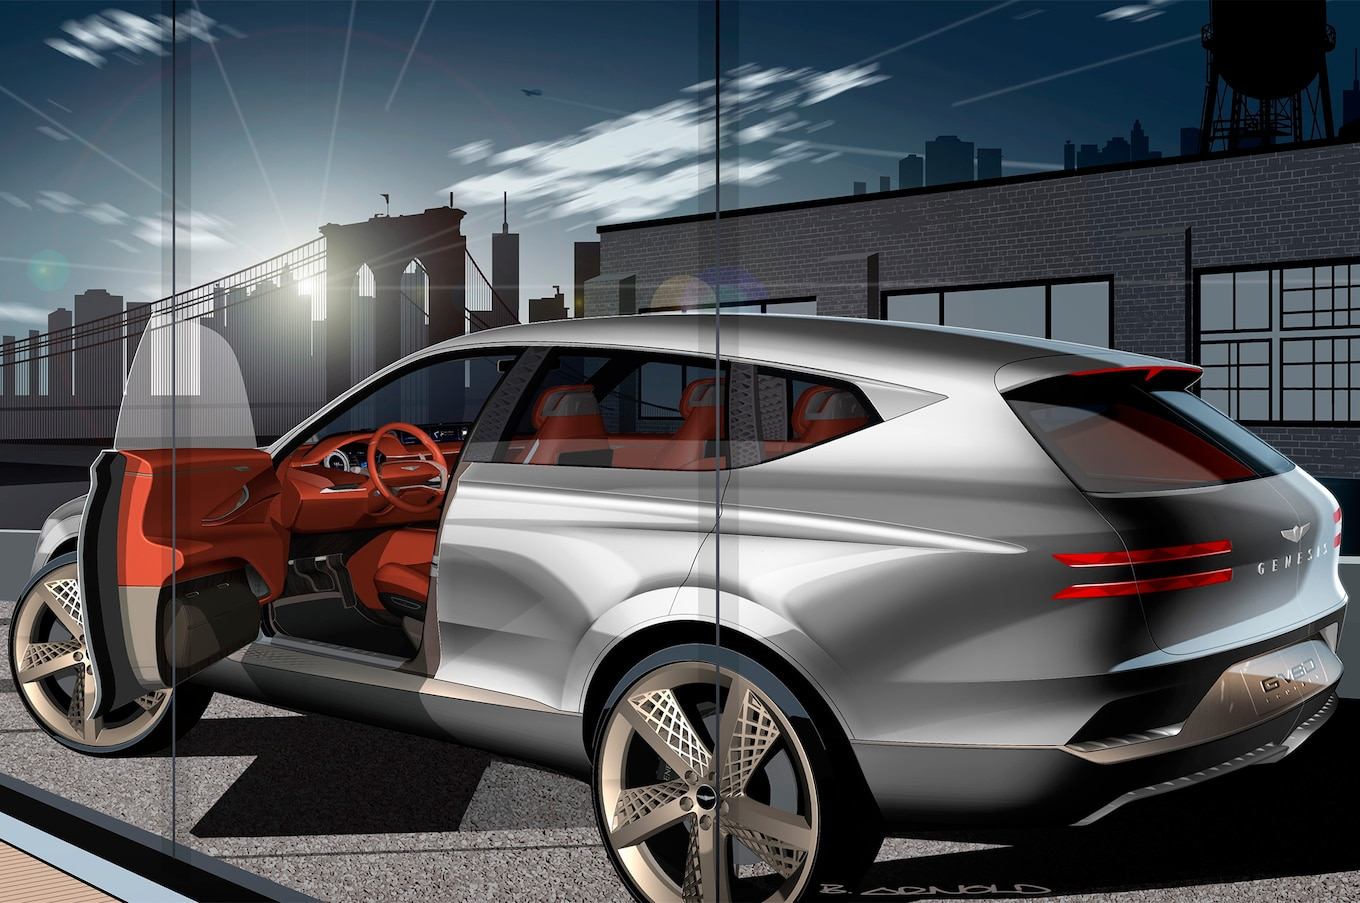 Genesis Luxury Brand Expands With GV80 SUV Concept Motor